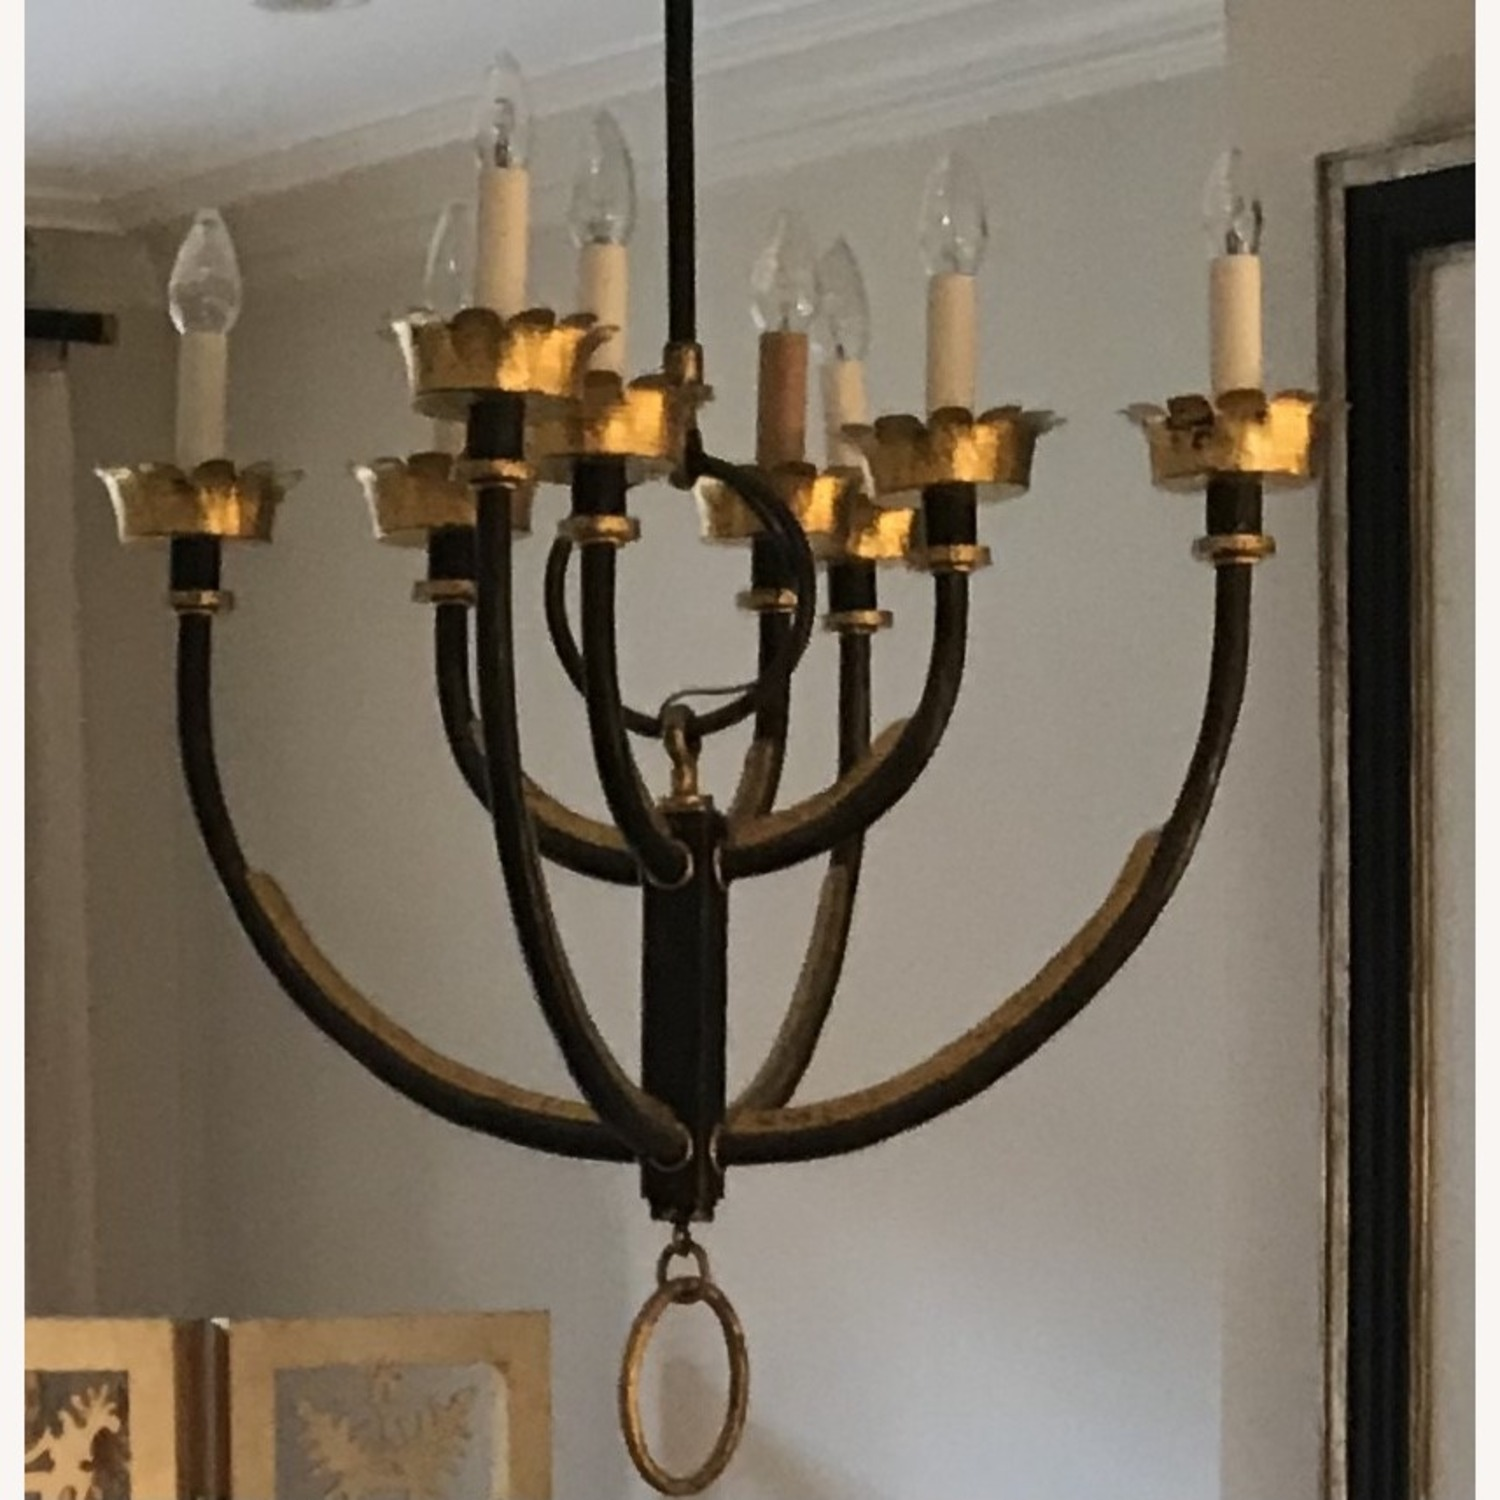 Mattaliano Hand Forged Wrought Iron Chandelier - image-6